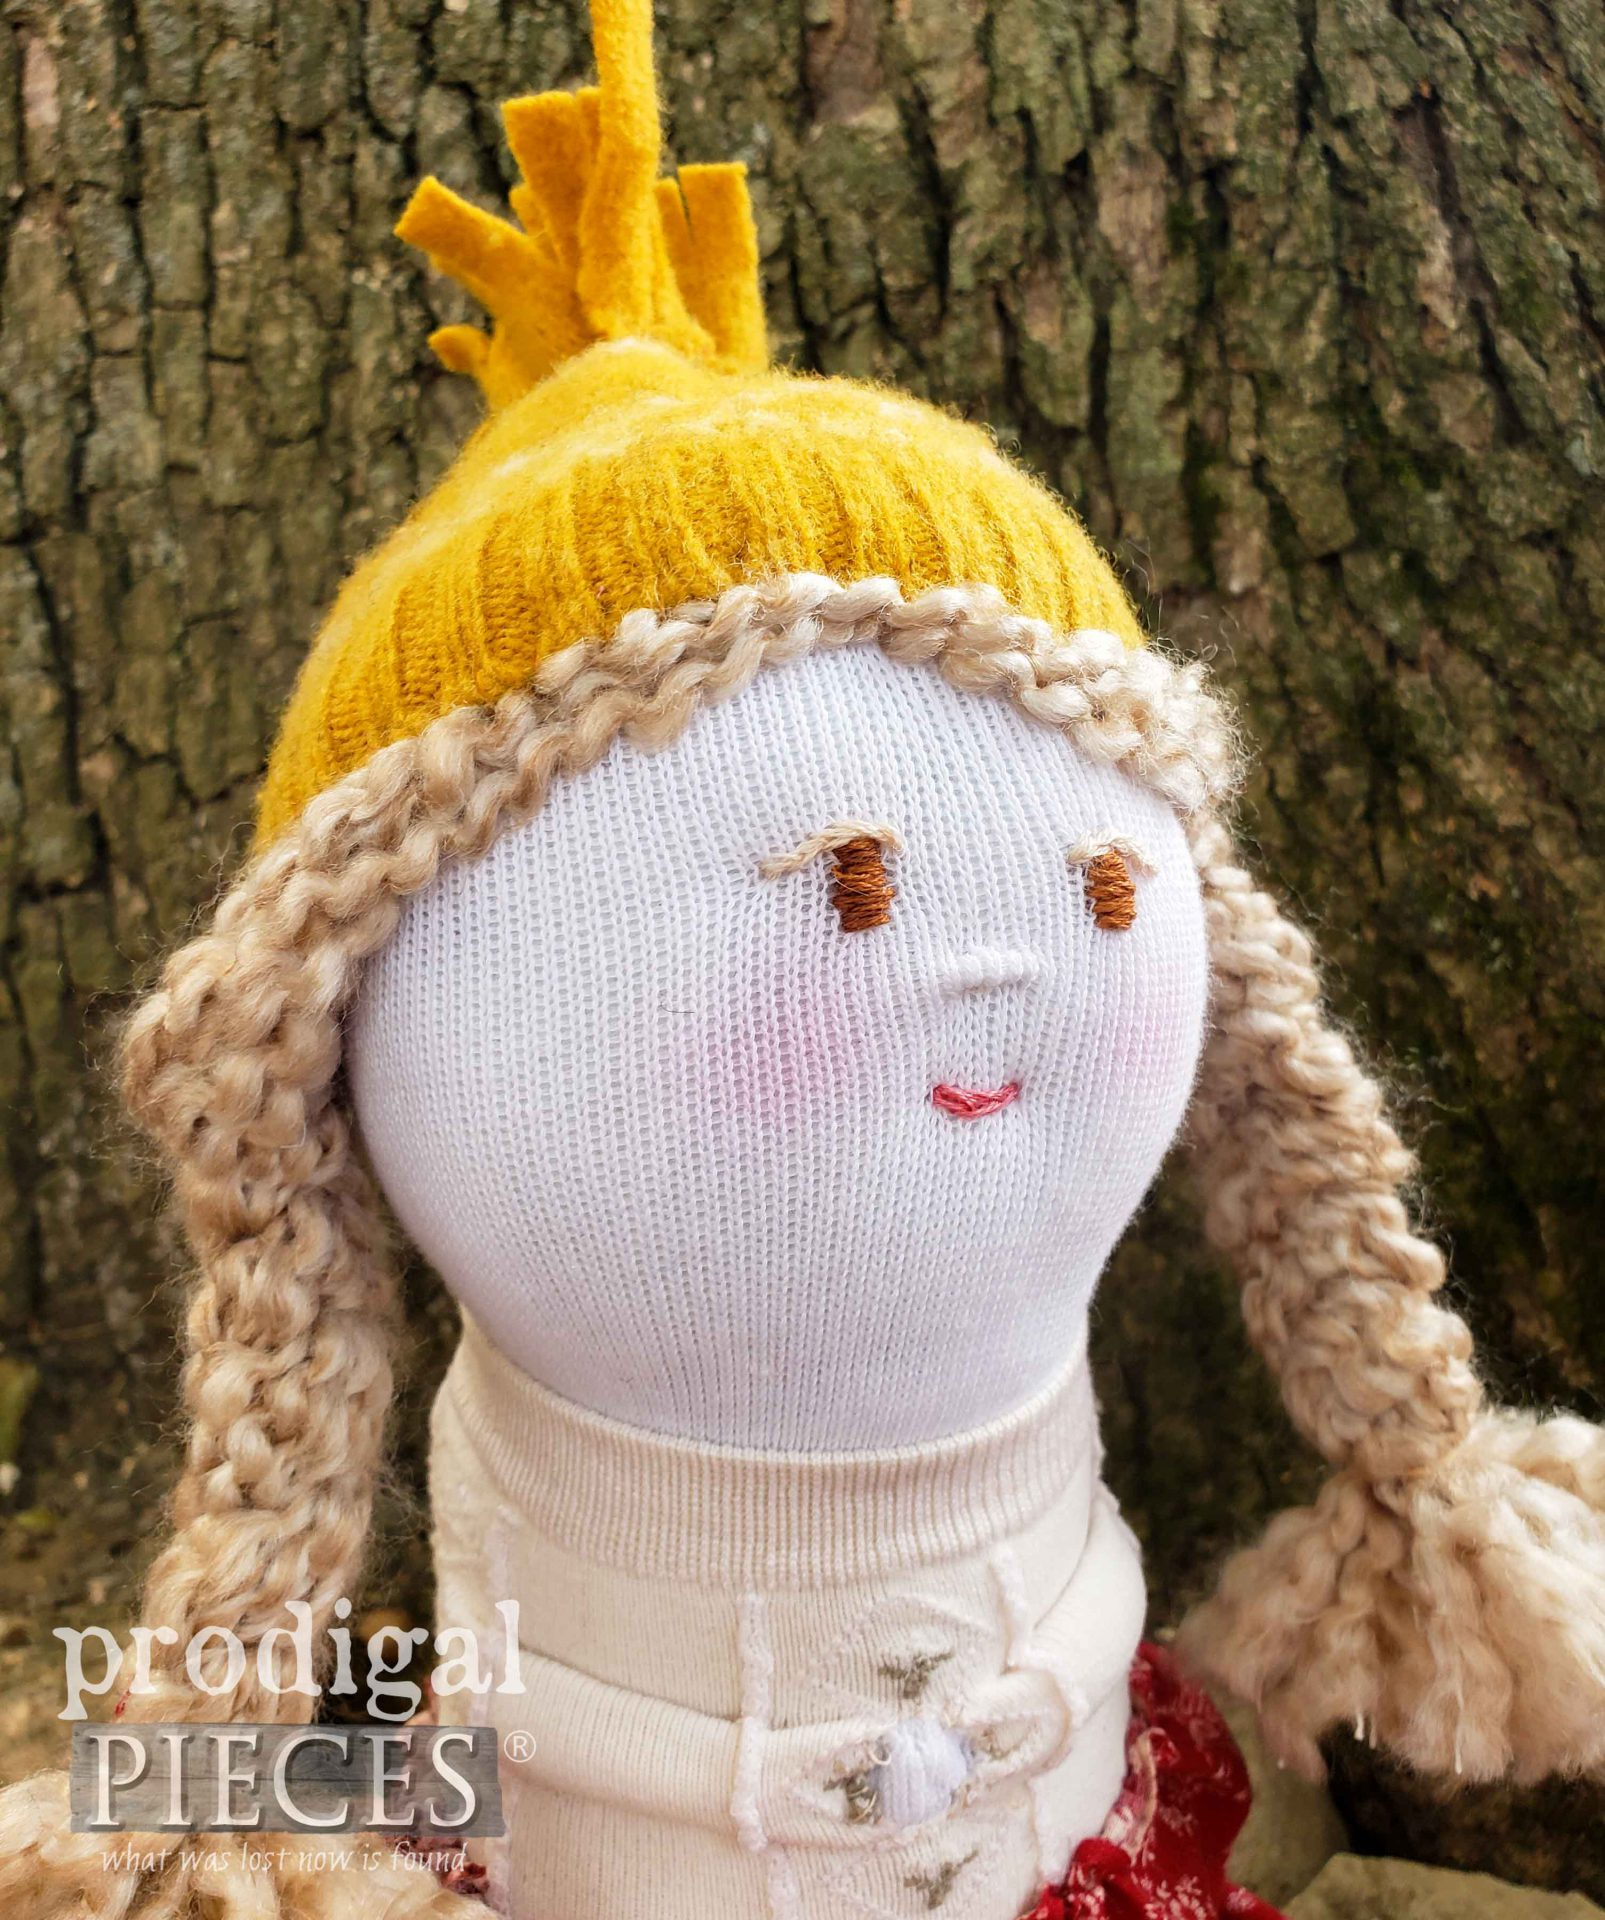 Blonde Sock Doll with Braids by Larissa of Prodigal Pieces | prodigalpieces.com #prodigalpieces #diy #dolls #toys #sewing #handmade